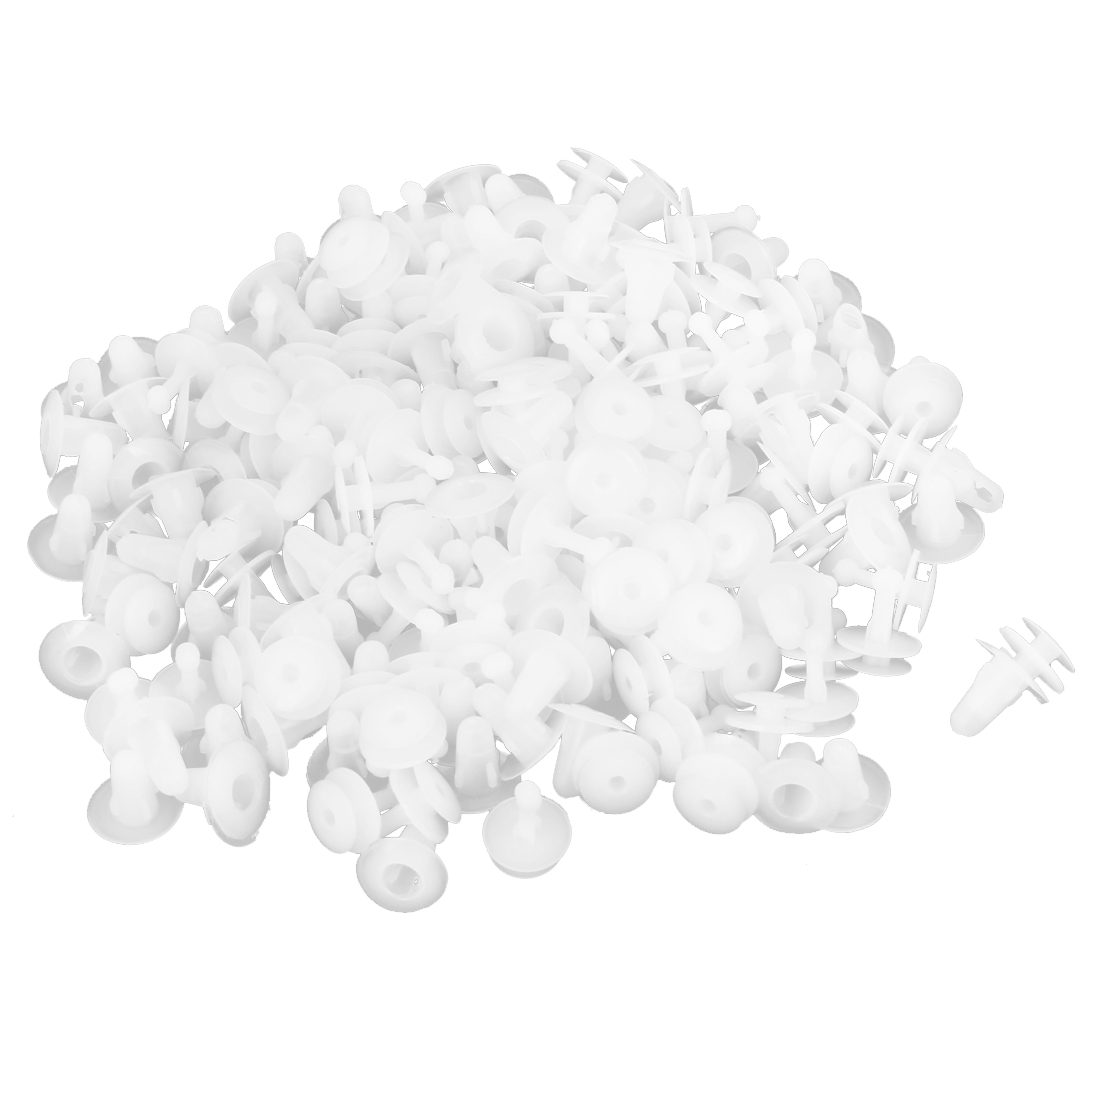 100 x White Plastic Door Fasteners Retainers Clio 7.5mm Hole for Car